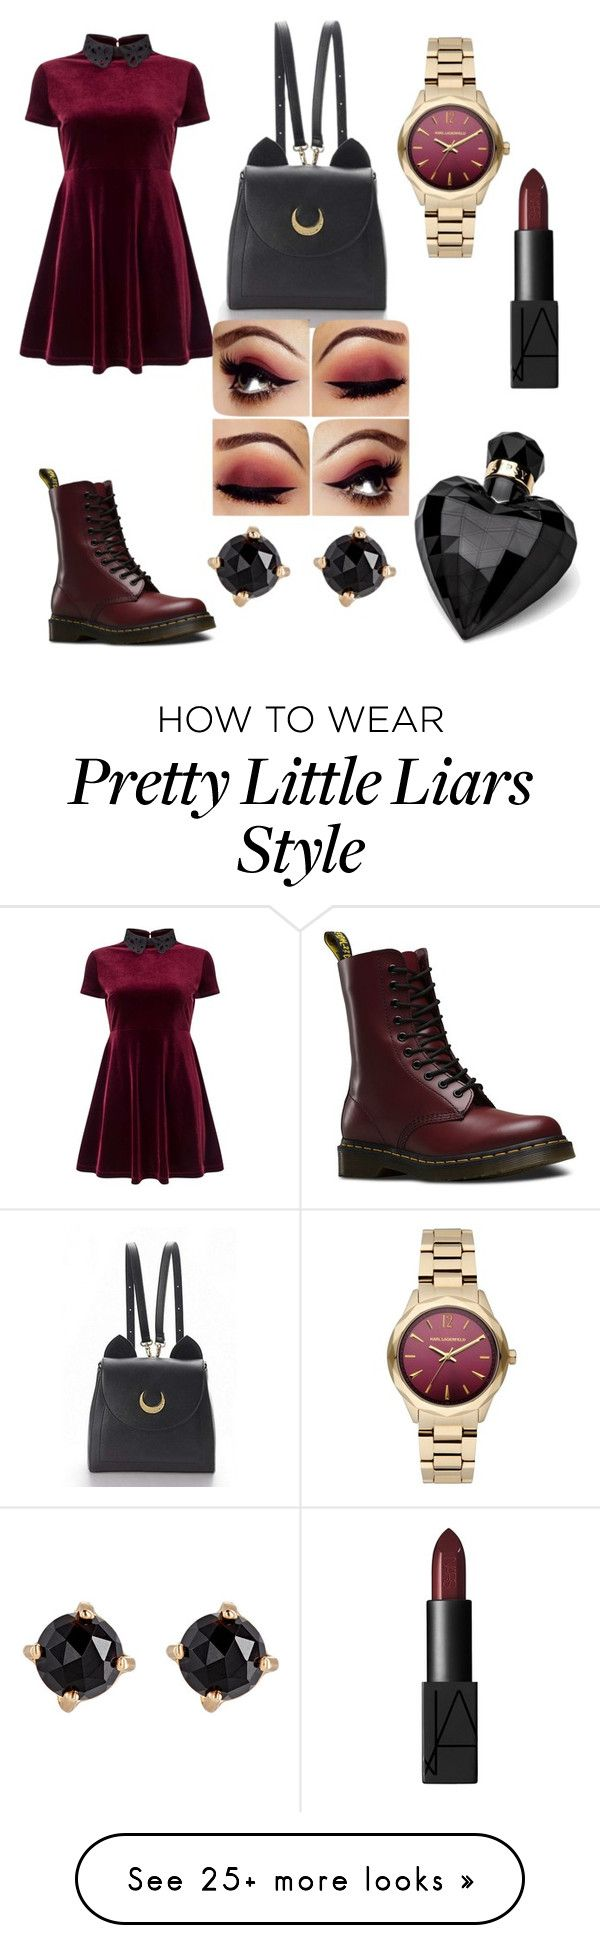 """aria from pretty little liars"" by graceandmelaninn on Polyvore featuring Miss Selfridge, Dr. Martens, WithChic, Karl Lagerfeld, NARS Cosmetics, Lipsy and Irene Neuwirth"